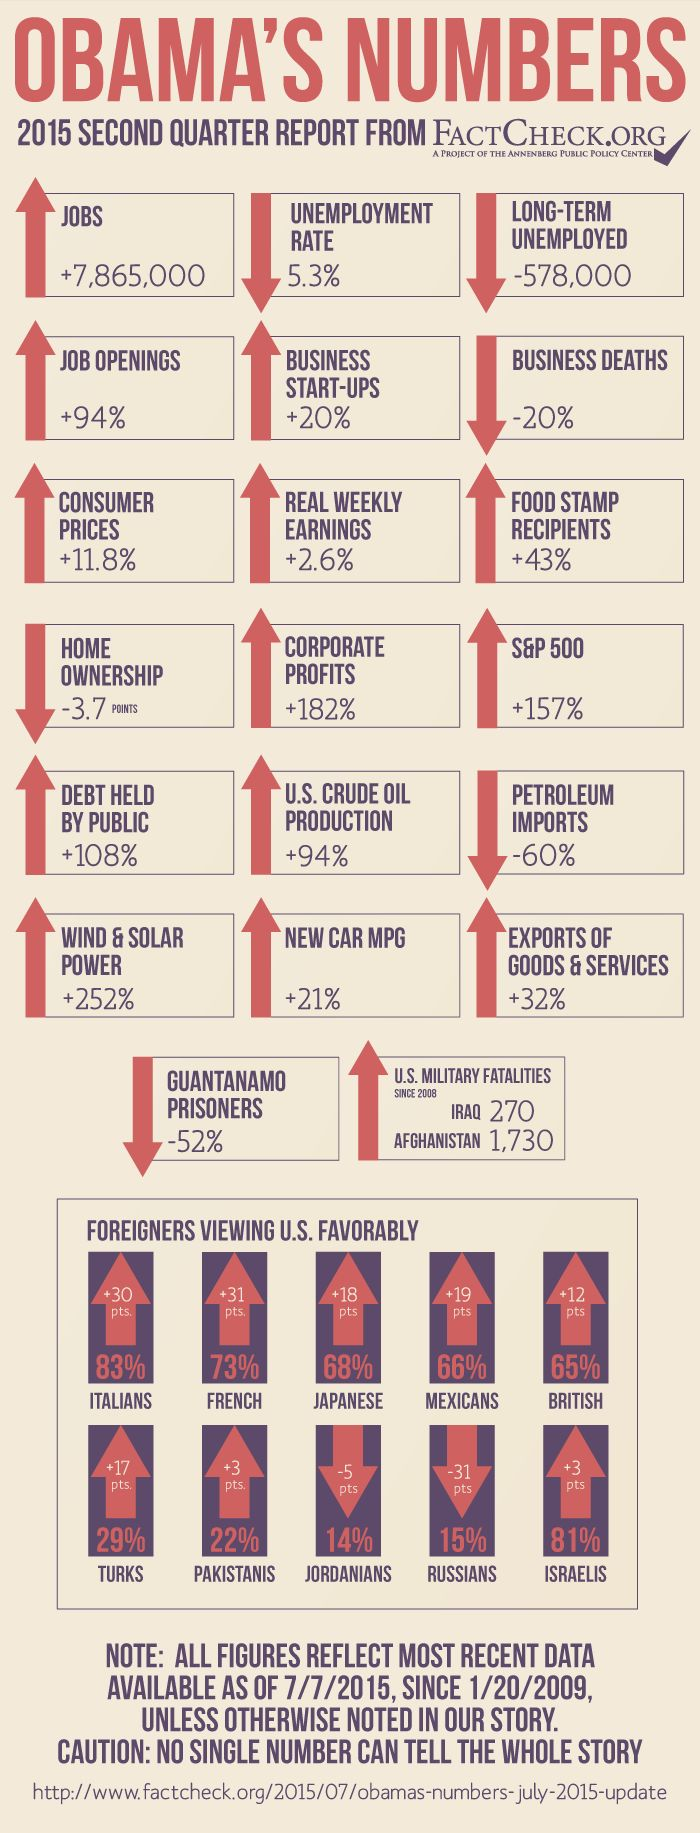 The 25 best factcheck org ideas on pinterest executive order obamas numbers july 2015 update unemployment is down as is home ownership while business start ups paychecks and oil production are up aiddatafo Images